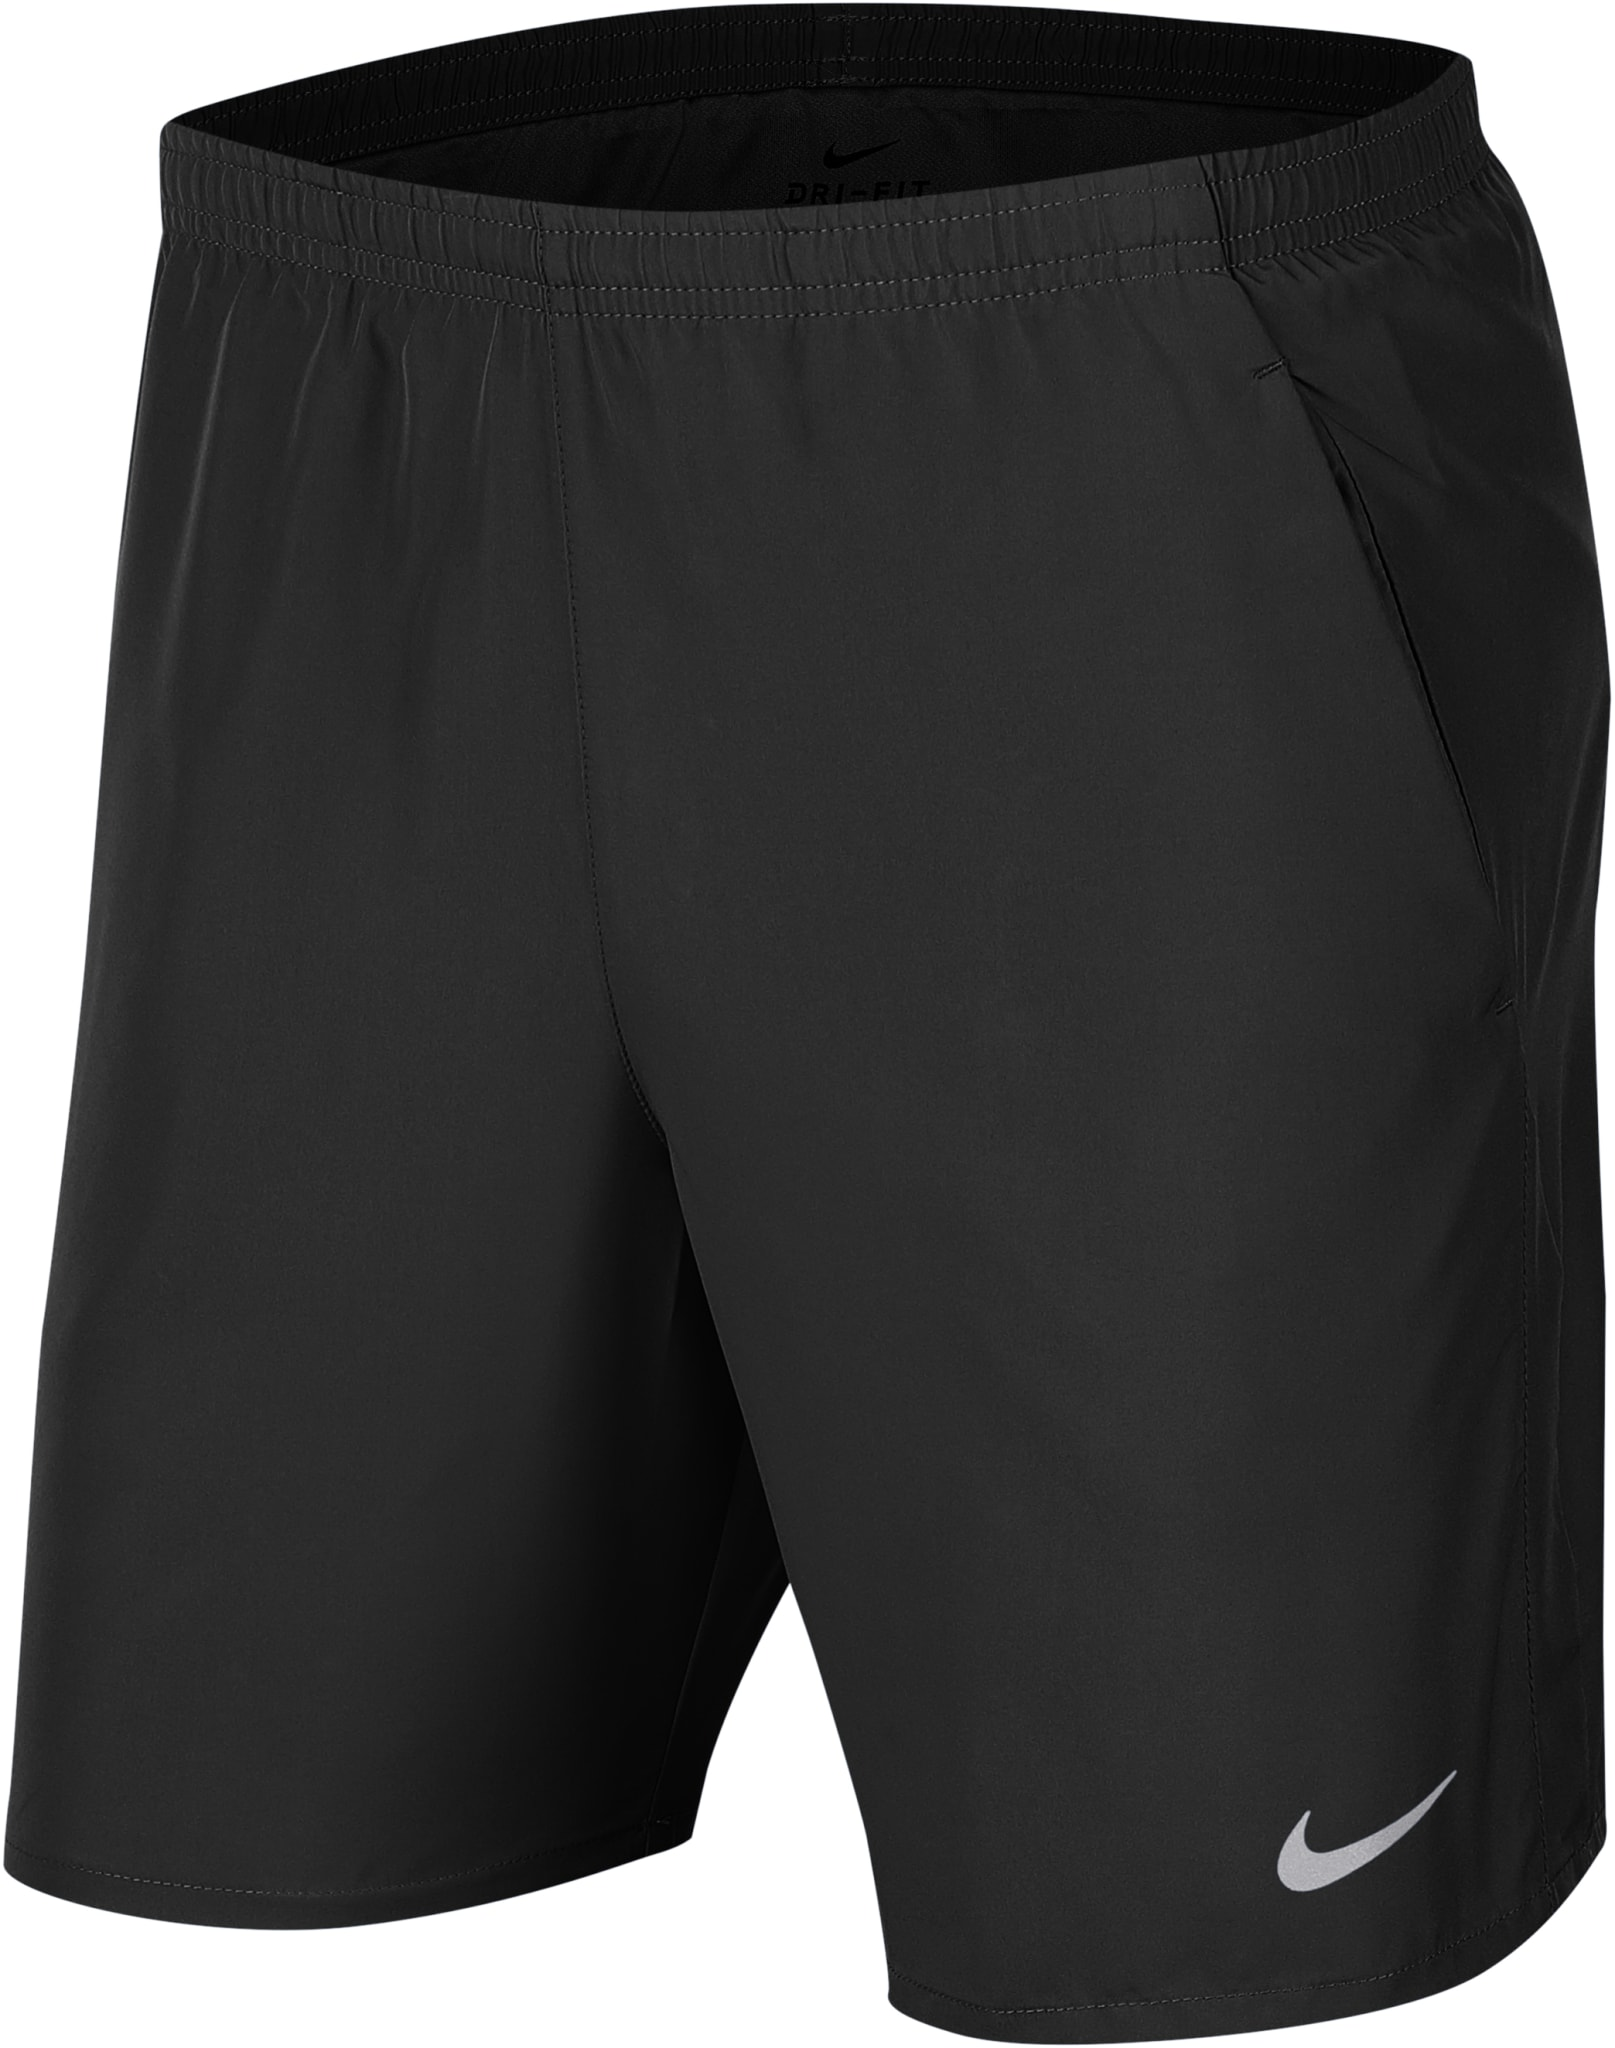 "Dri-FIT Run 7"" Running Shorts M"